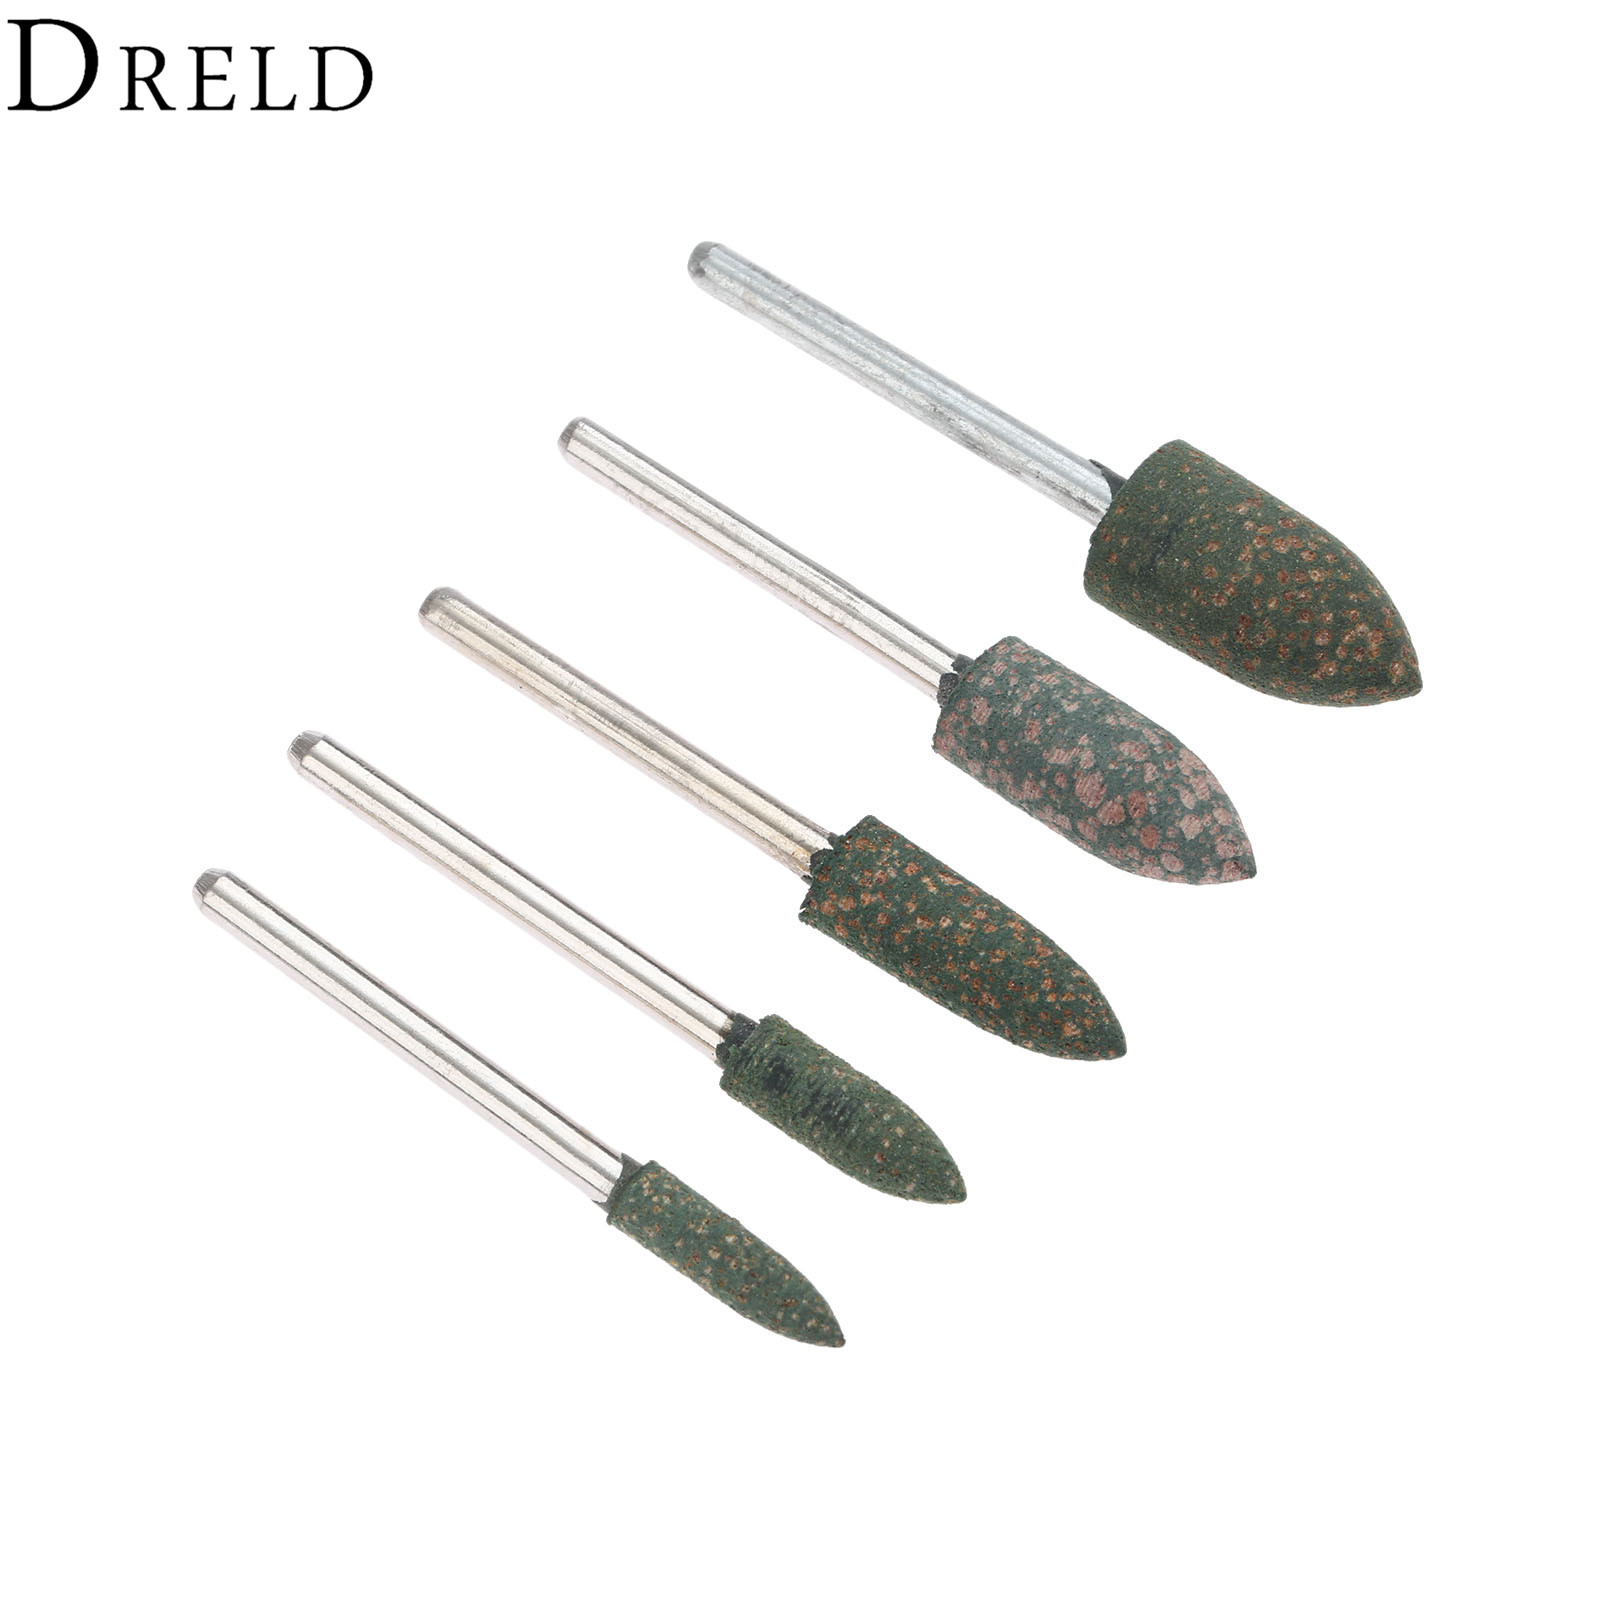 DRELD 5Pcs 3mm Shank Rubber Grinding Head Buffing Polishing Grinding Mounted Point For Metalworking Grinder Dremel  Rotary Tool